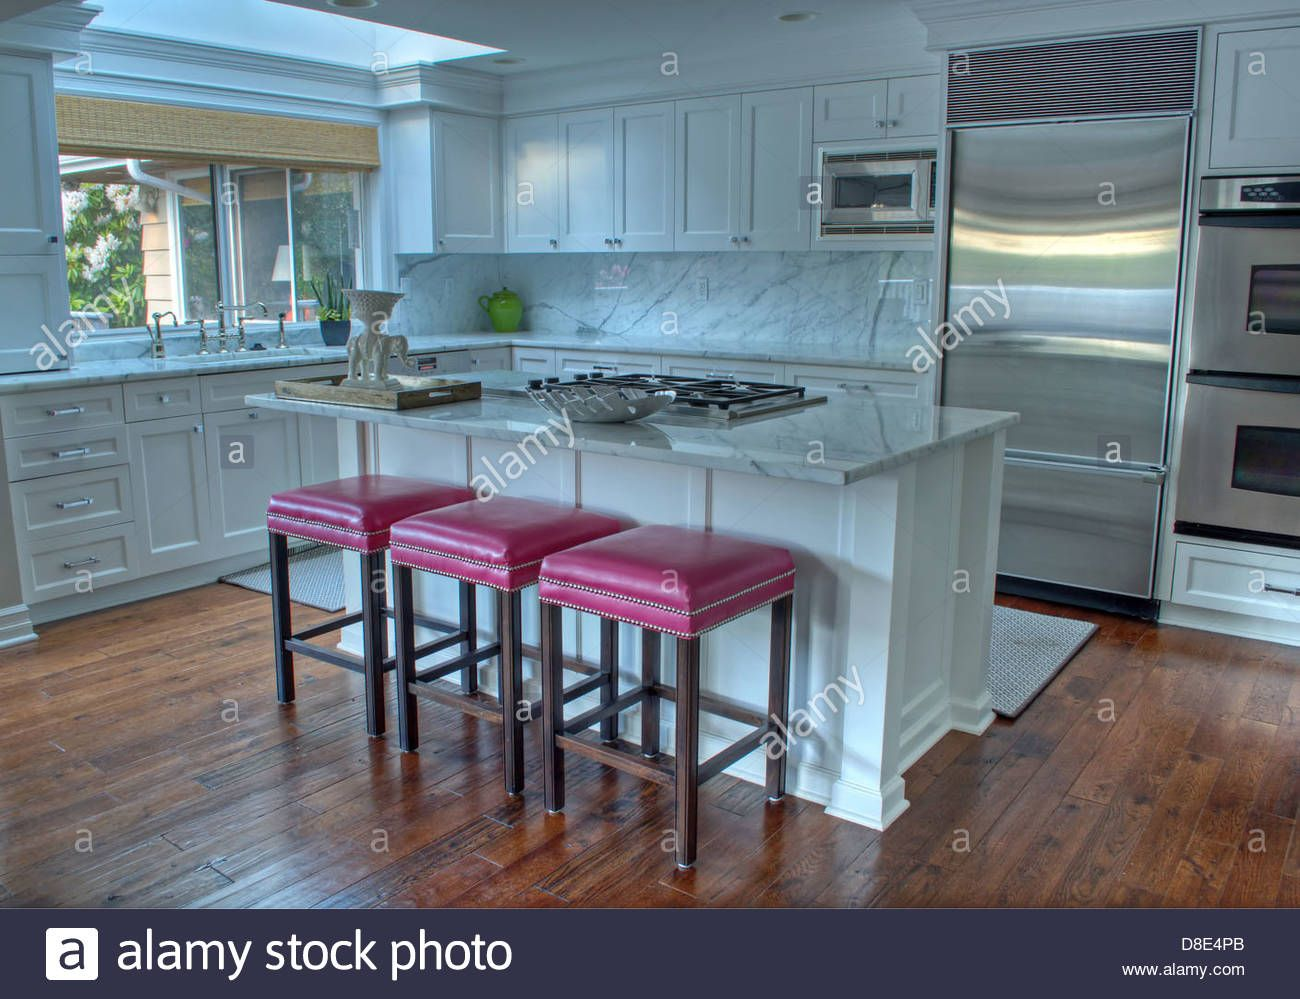 Download this #stock #image: modern #kitchen with white cabinets ...